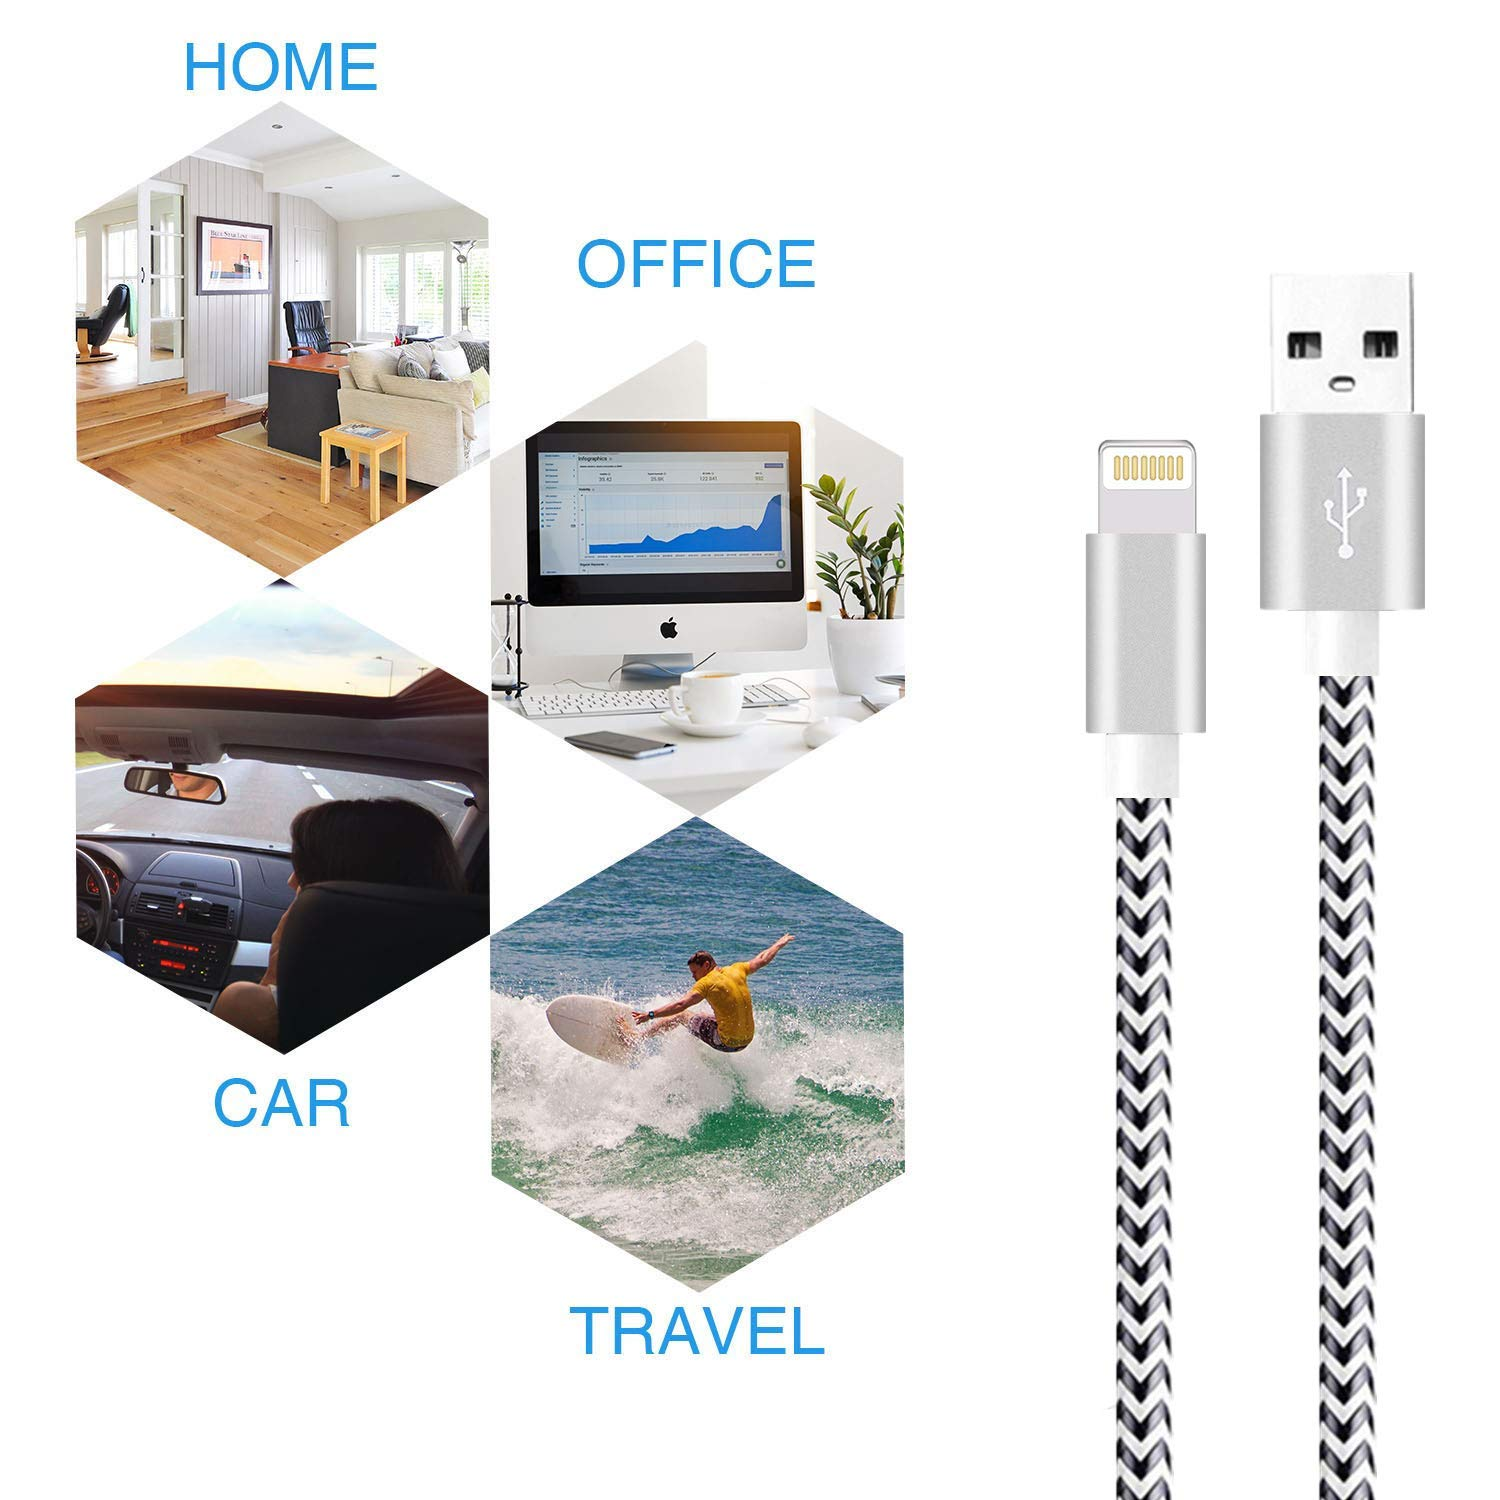 Black/&Silver Sharllen iPhone Charger Cord Lightning Cable 3//3//6//6//10FT 5Pack Nylon Braided USB Fast iPhone Charging Cable/&Syncing Long Cord Compatible iPhoneXs//Max//XR//X//8//8P//7//7P//6//iPad//iPod